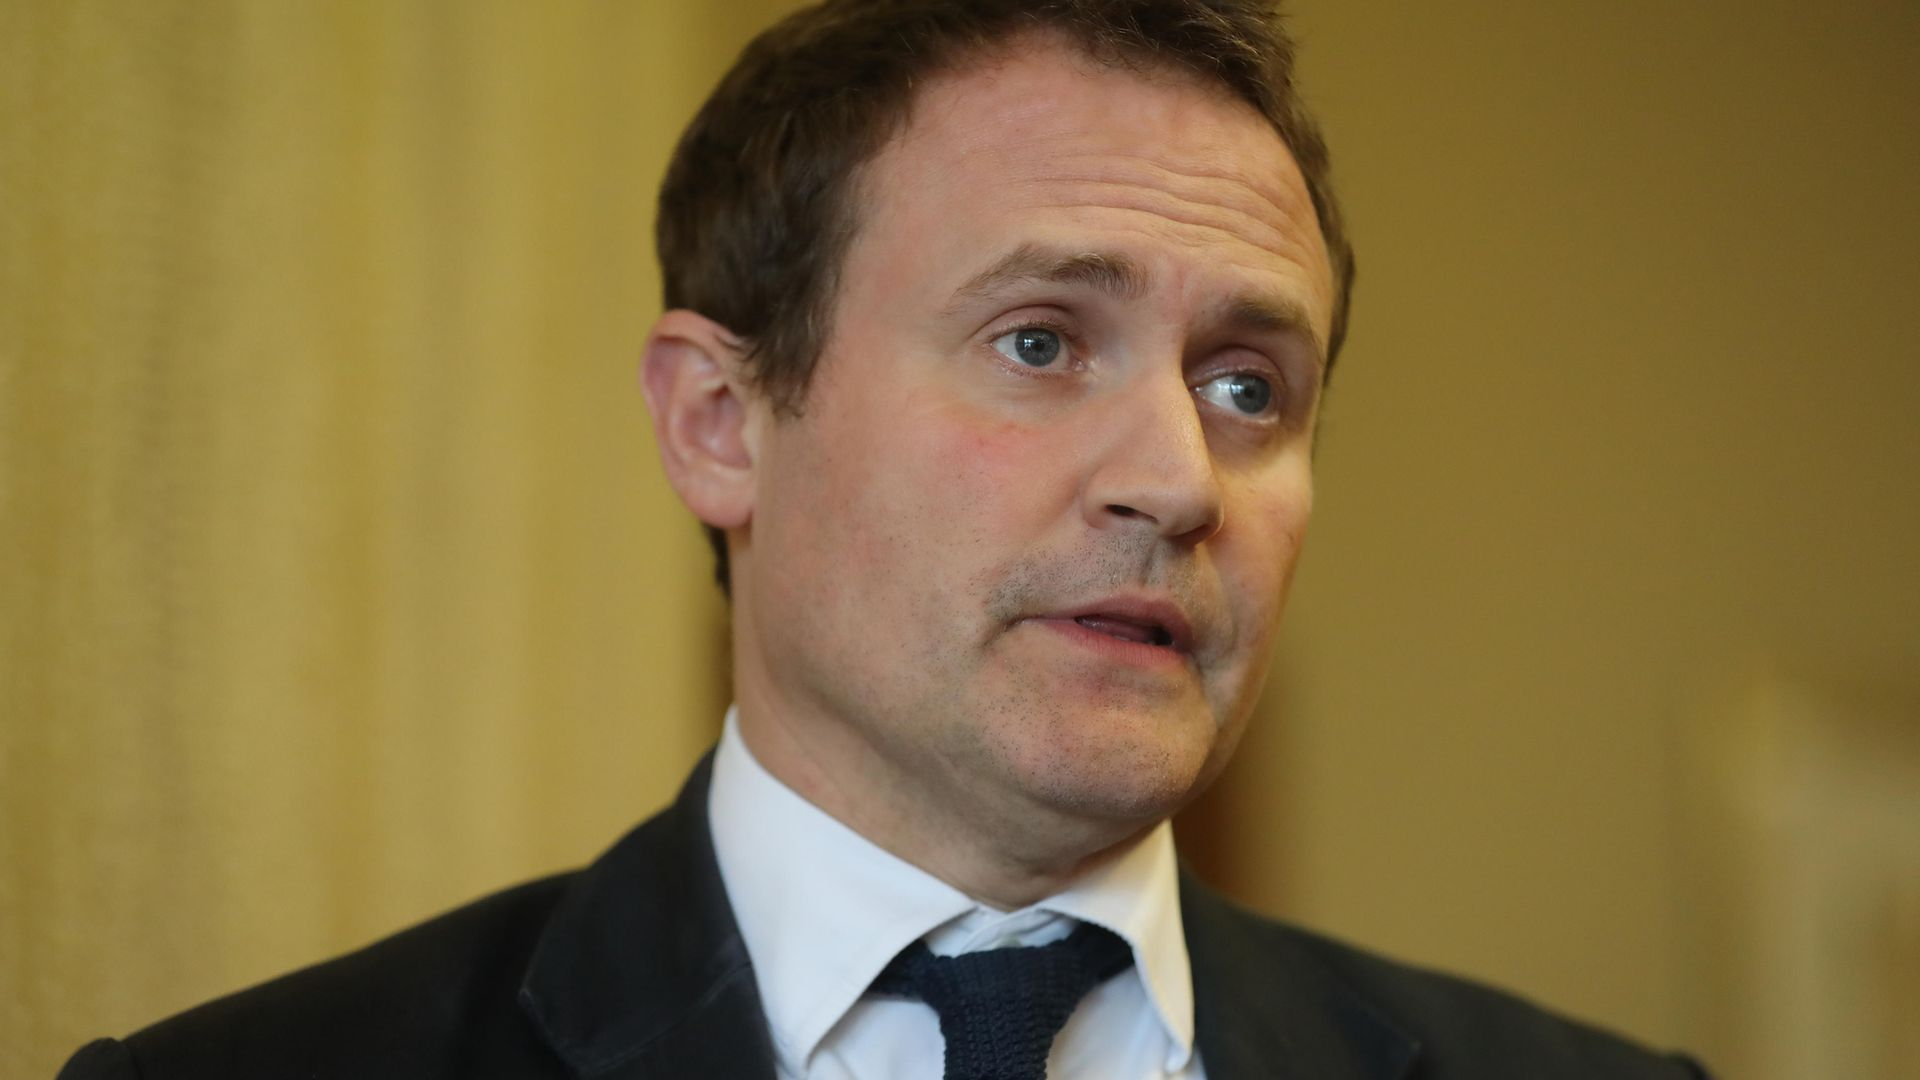 Committee chairman Tom Tugendhat speaking to the media at the Armagh city hotel - Credit: PA